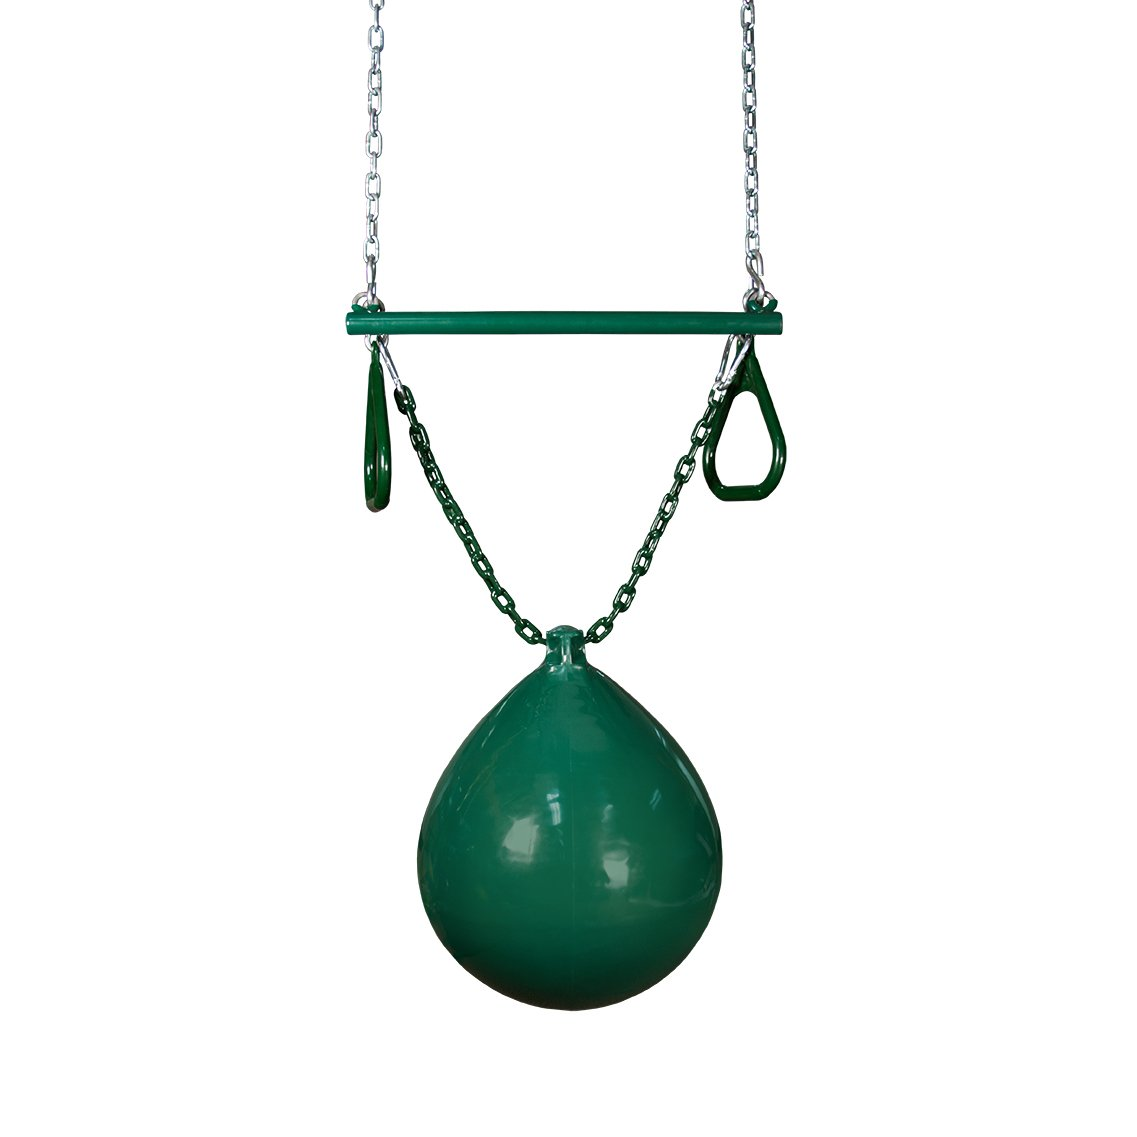 Gorilla Playsets 04-0012-G/G Buoy Ball with Trapeze Bar, Green, 36.5'' Plastisol Coated Green Chains by Gorilla Playsets